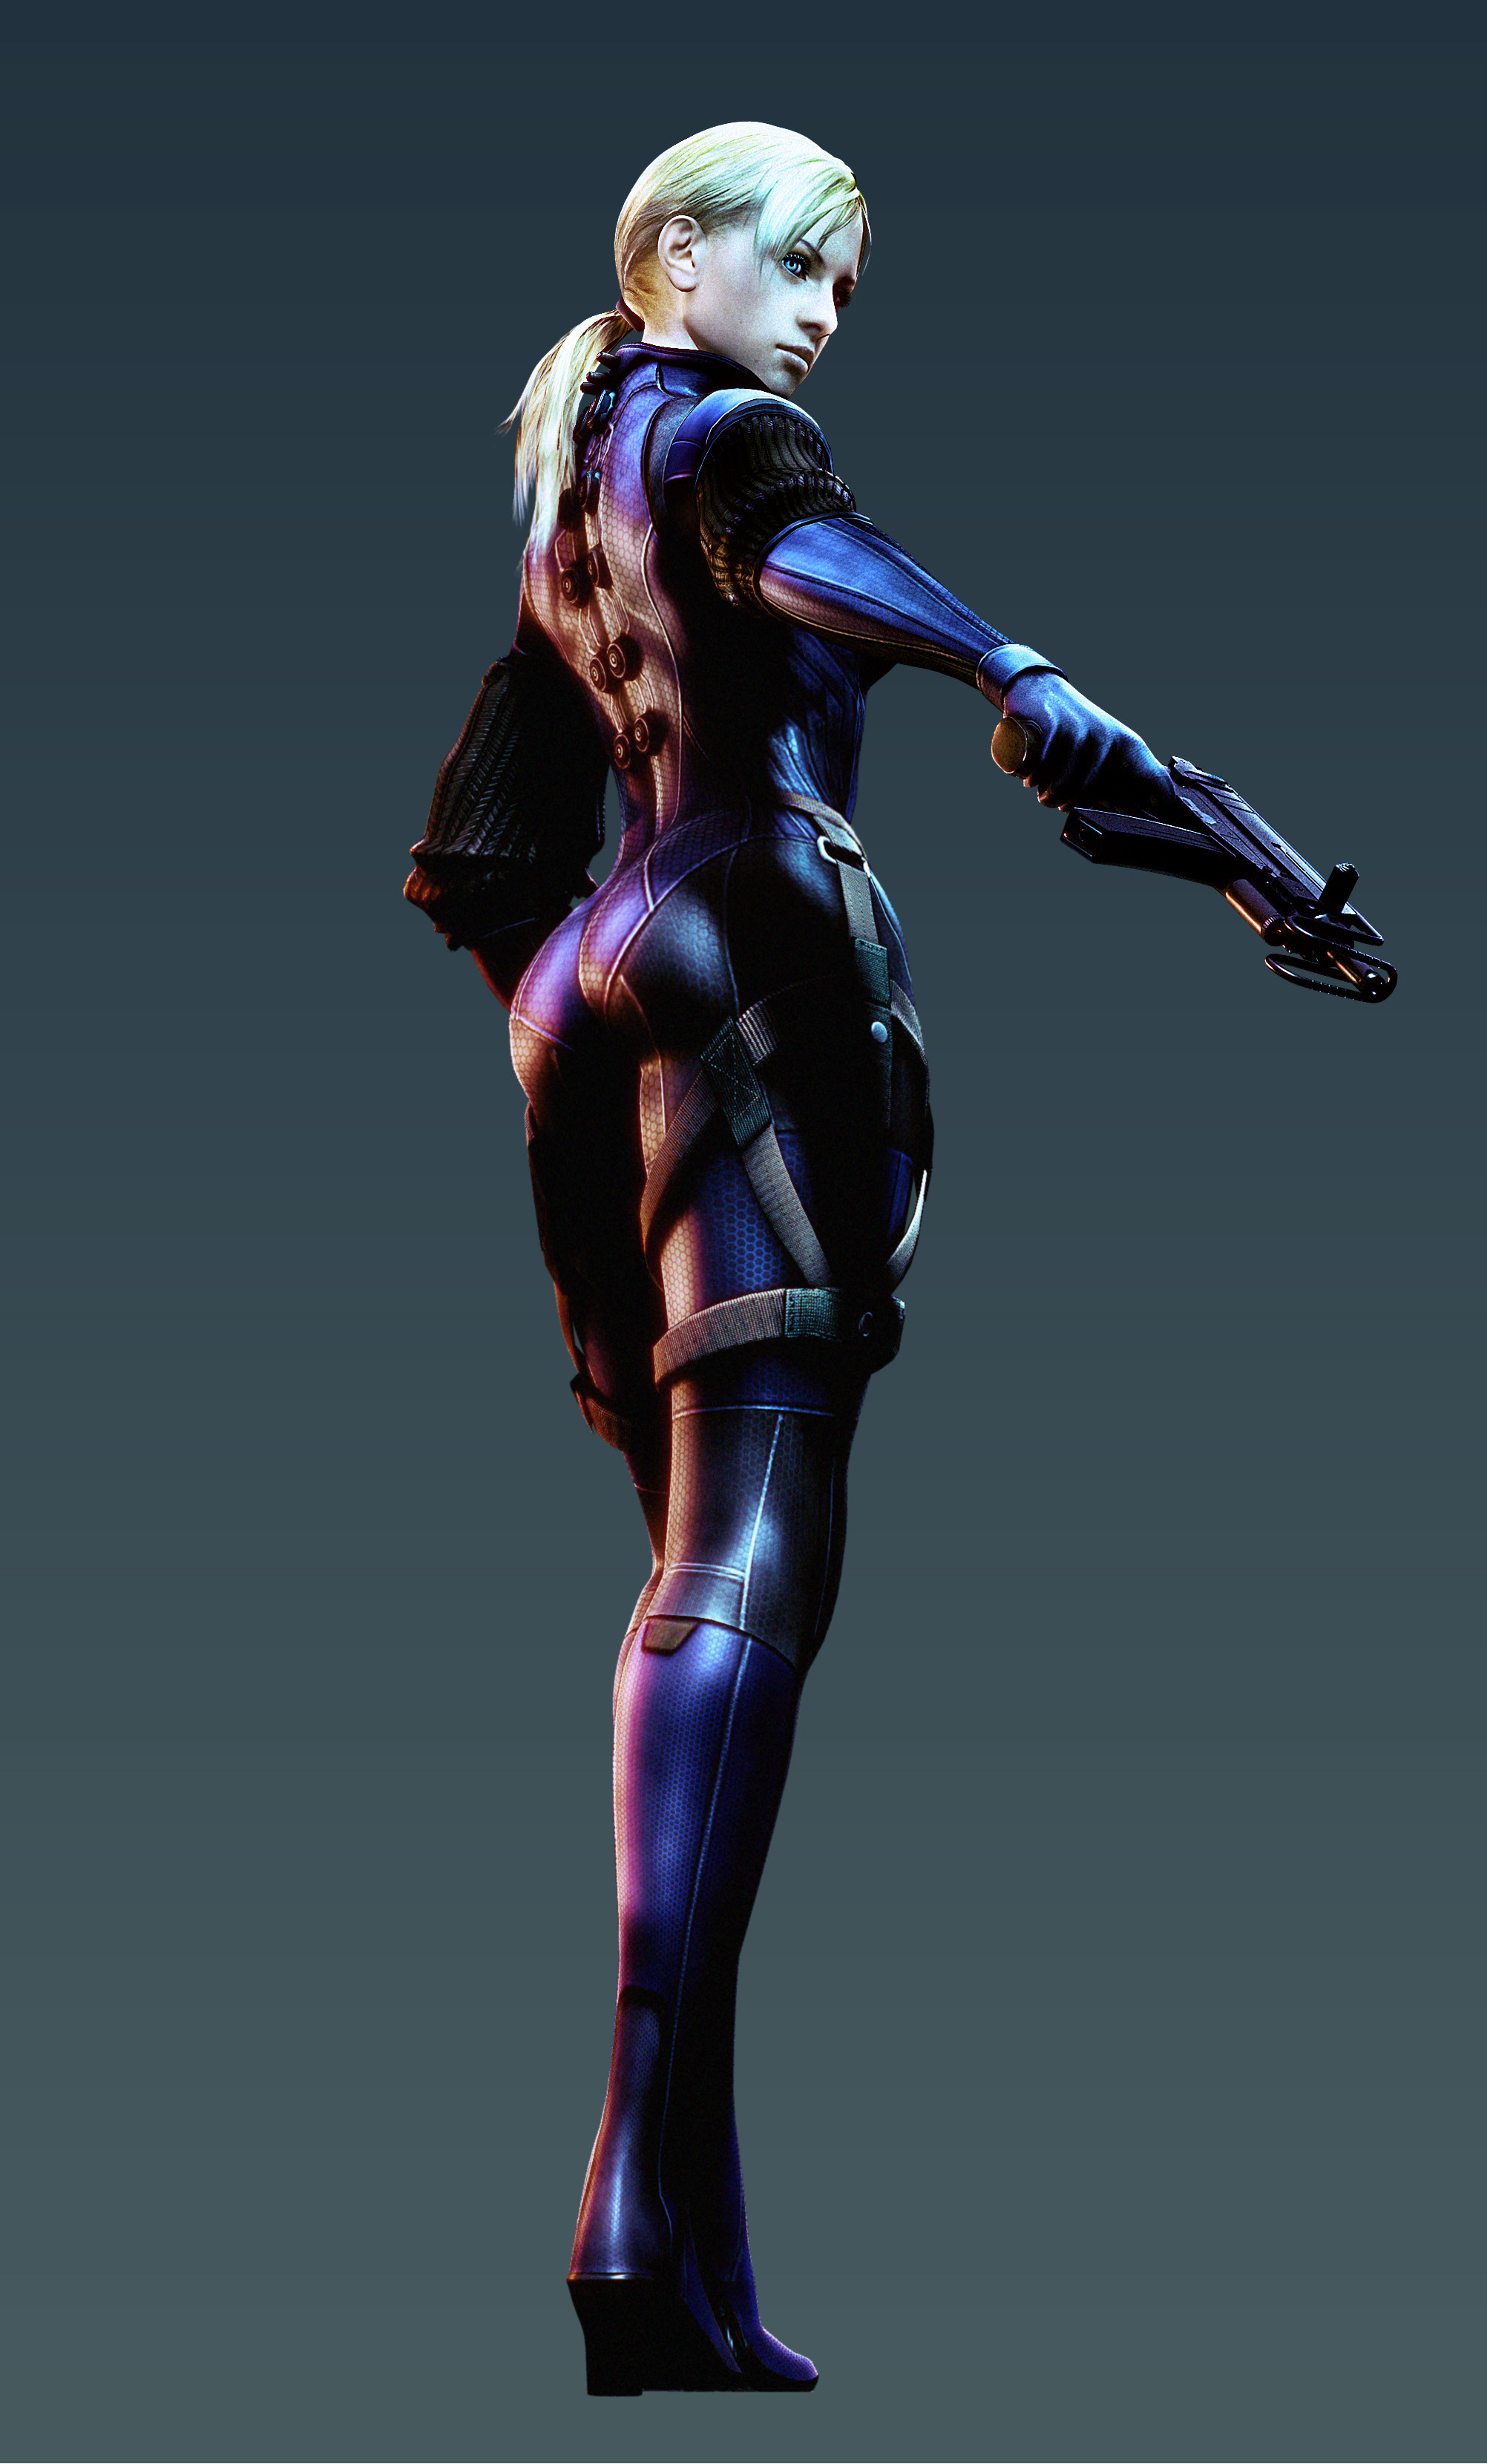 Jill Valentine, Resident Evil 5. I always did like that outfit!